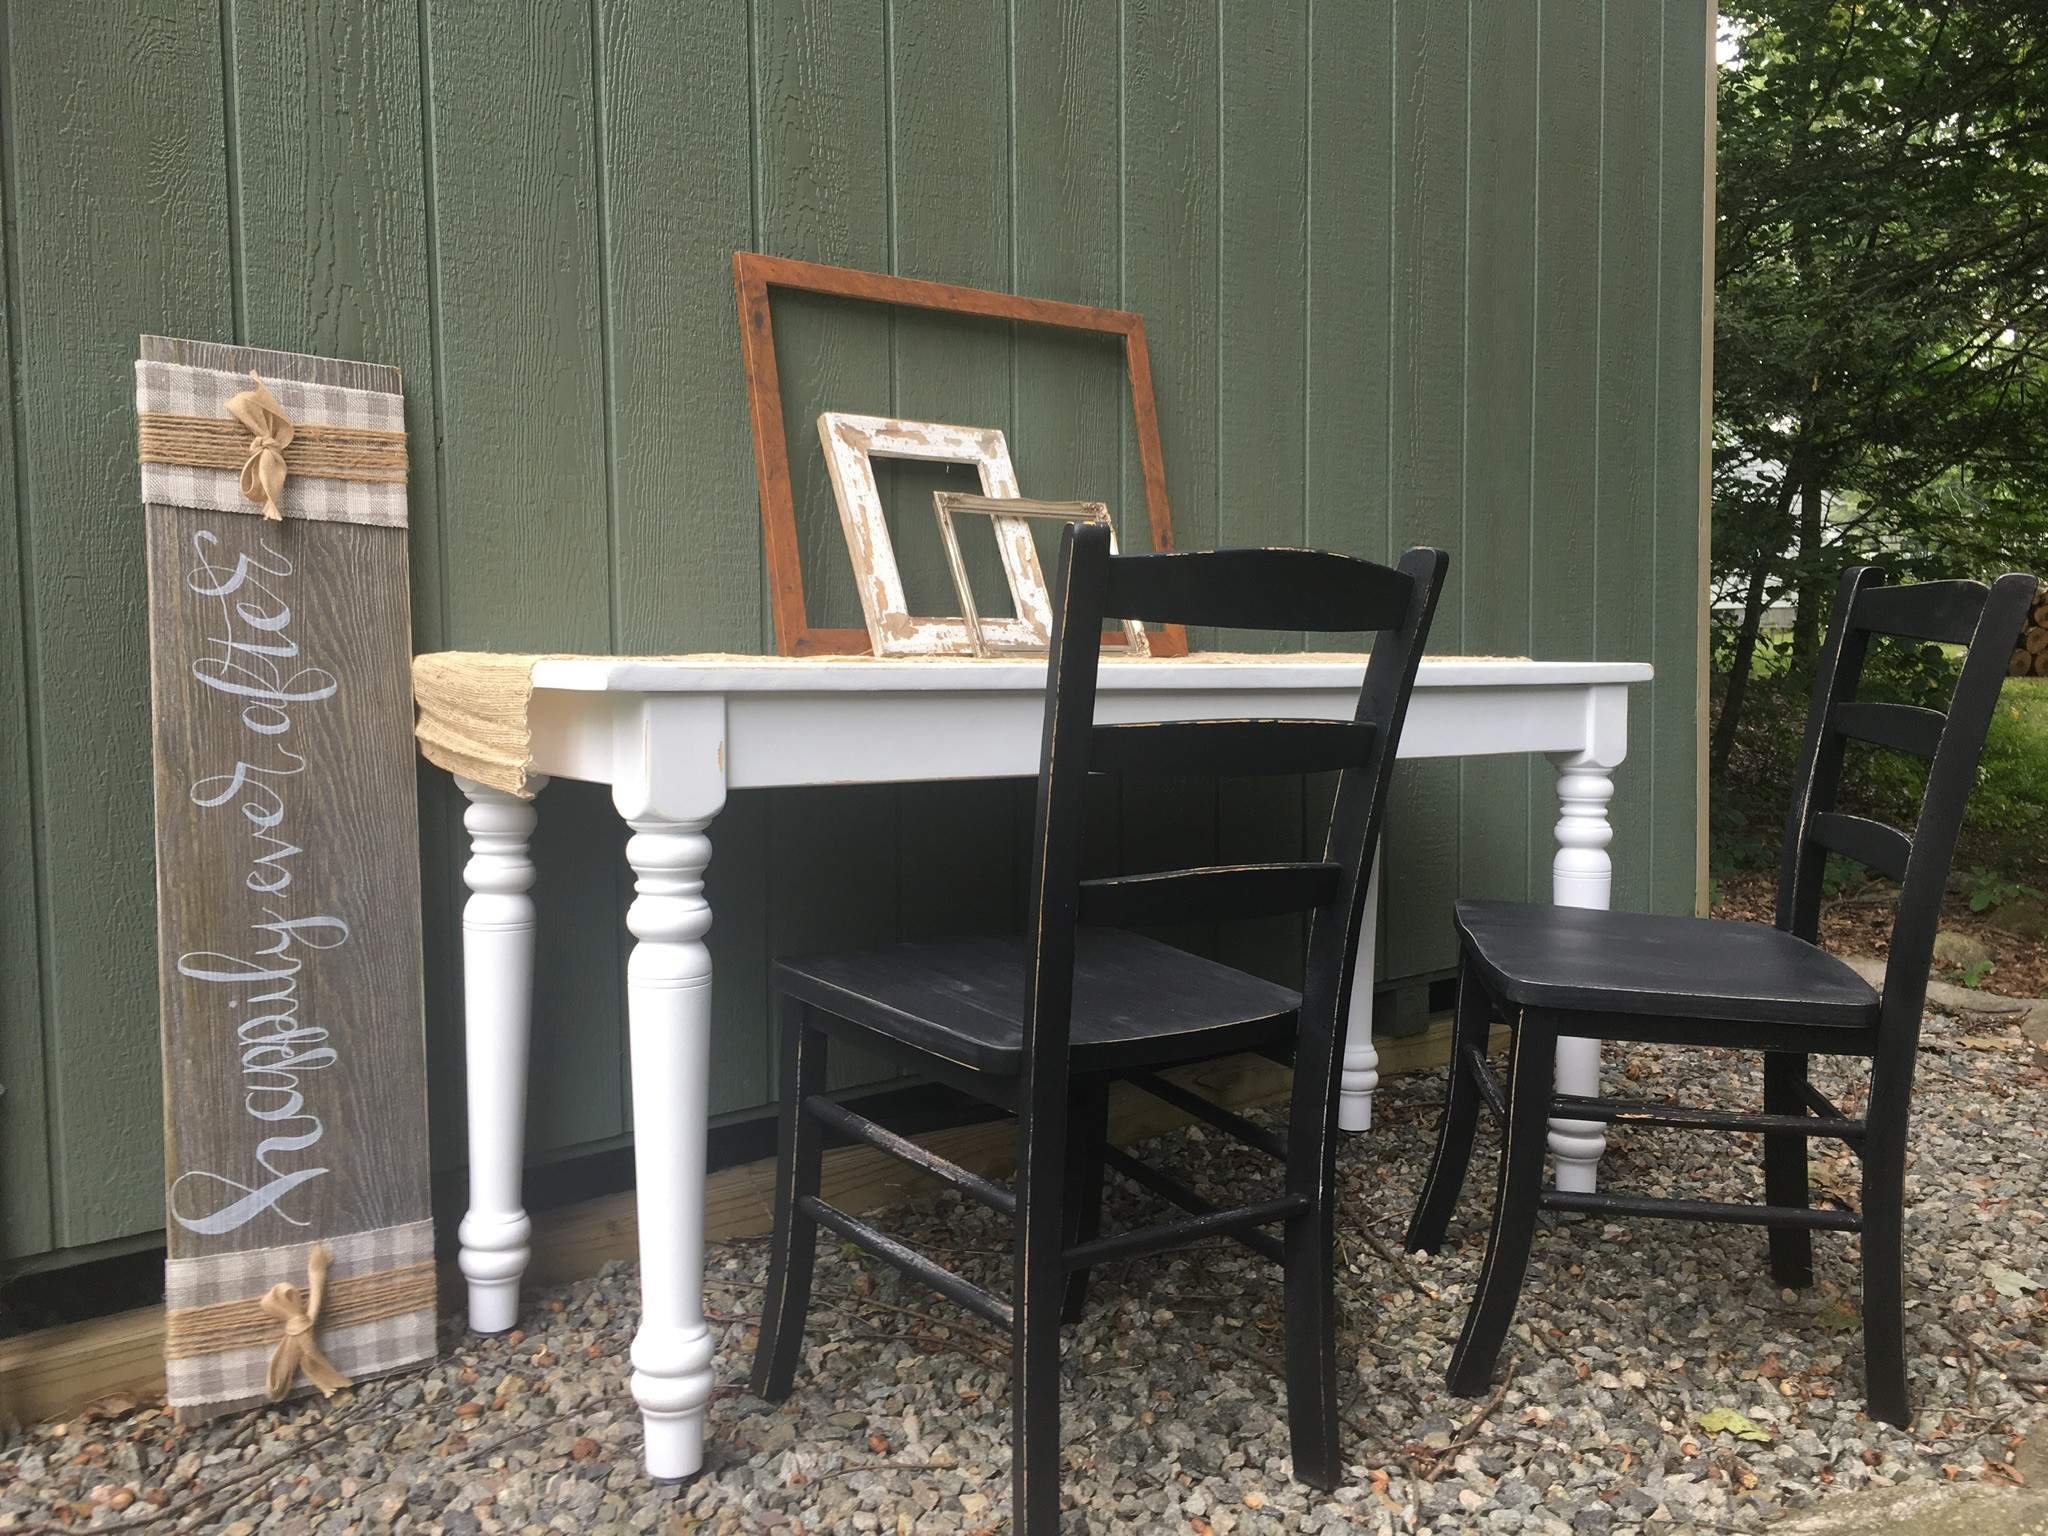 Refinished White Table w/ 2 Black Chairs